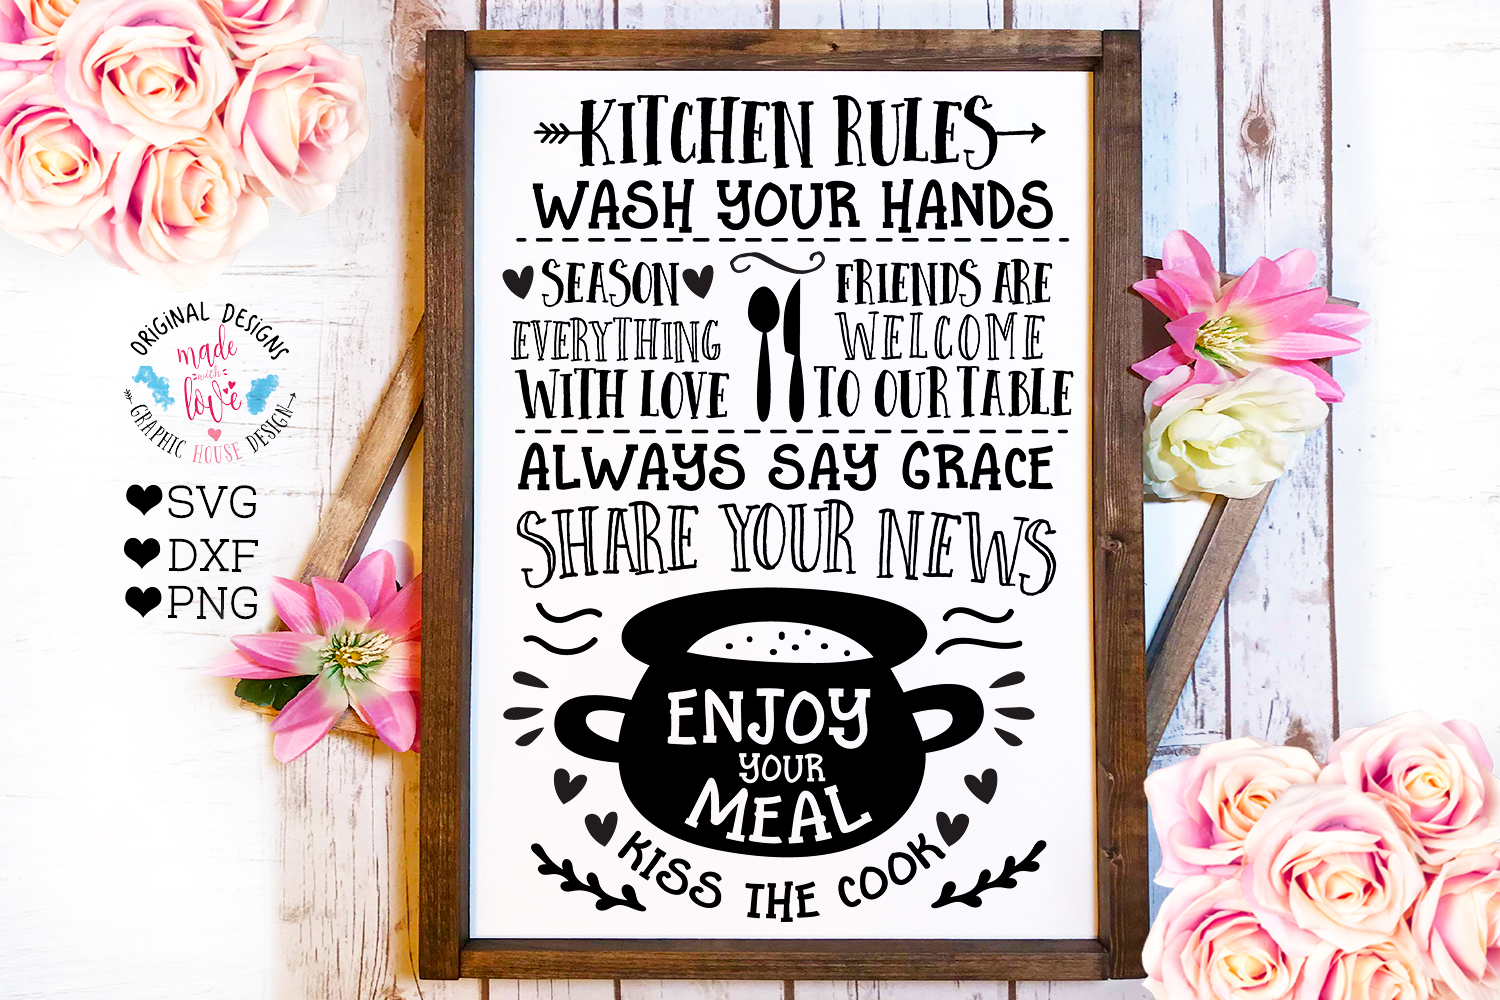 Home and Summer Decor Rules Cut File Bundle example image 6